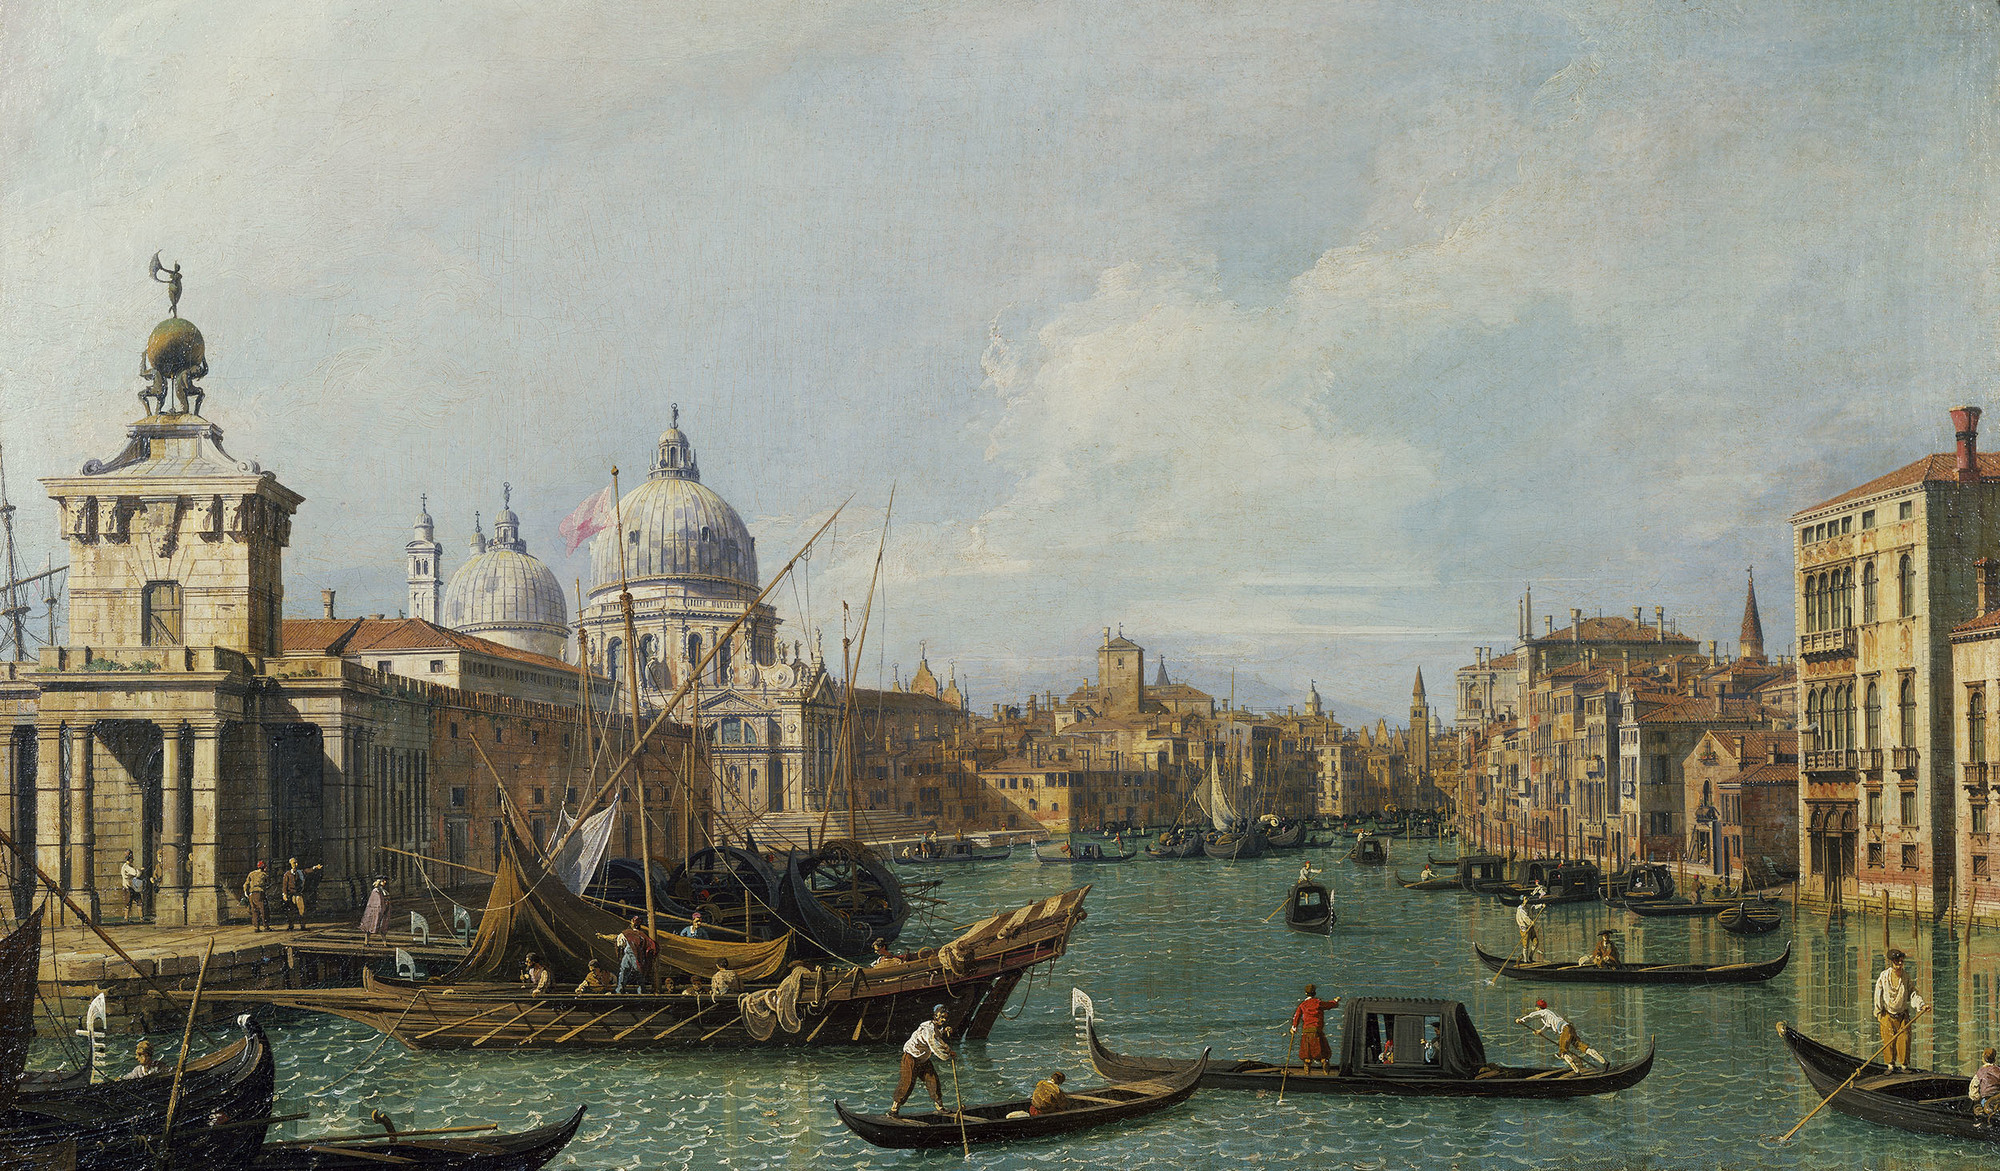 The mouth of the Grand Canal looking west towards the Carità, circa 1729-30